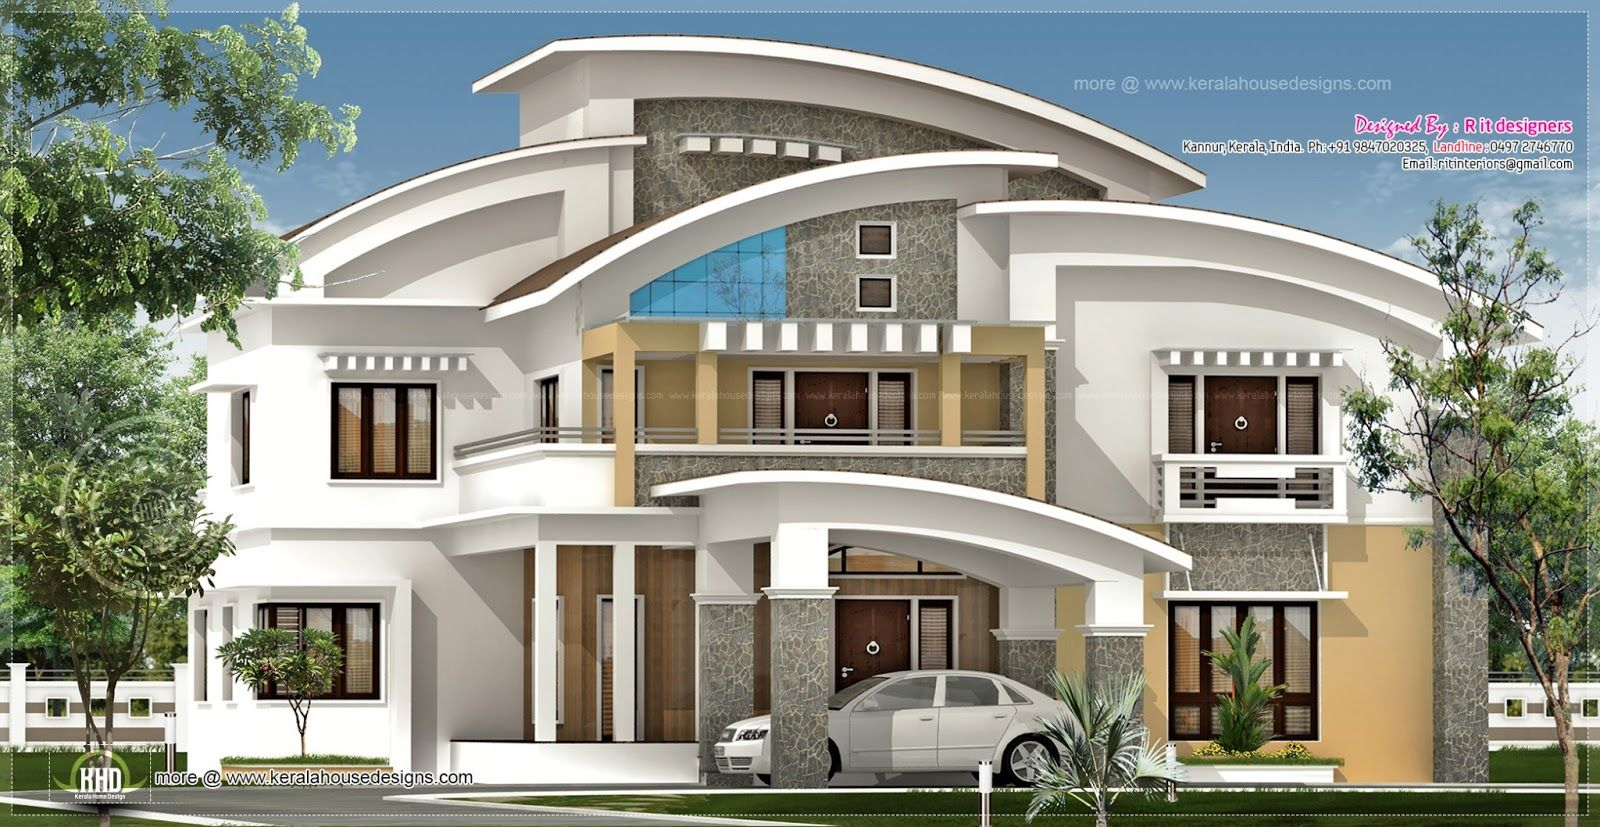 Square feet luxury villa exterior kerala home design floor for Home designs kerala architects